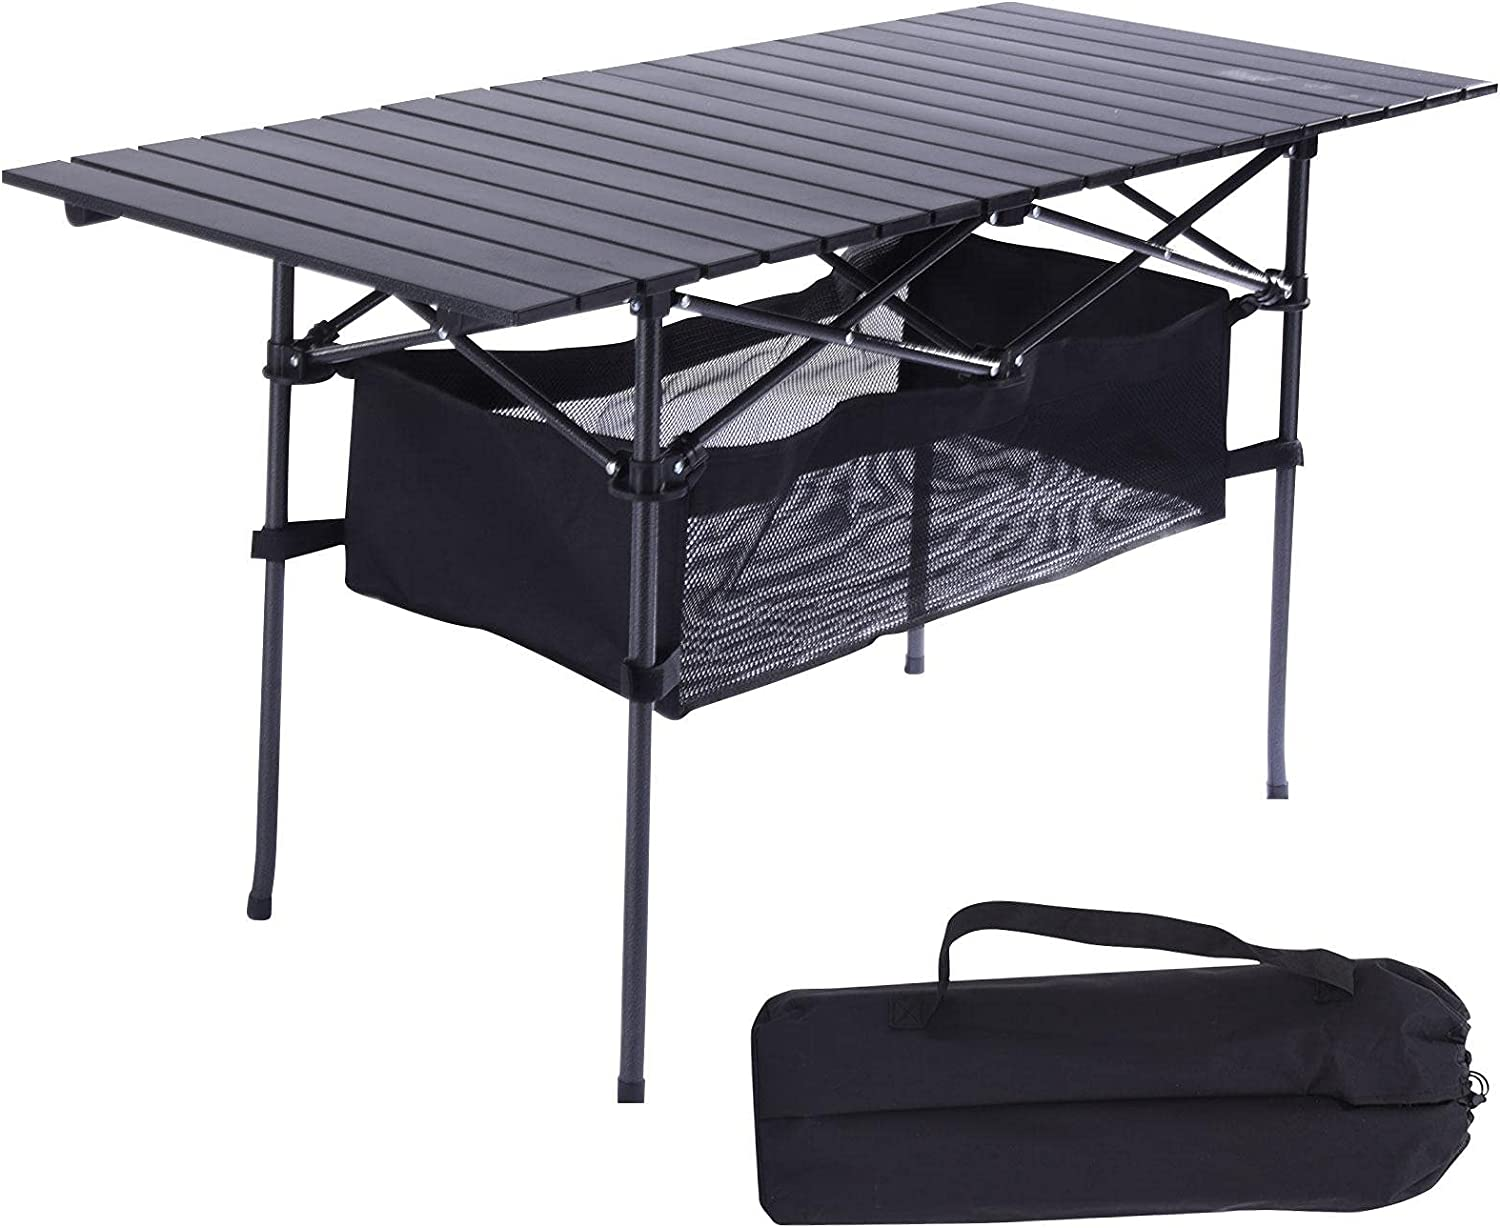 Portable Camping Tables That Lightweight Max 84% OFF 47.2x21.6x26.7i Quality inspection up Fold